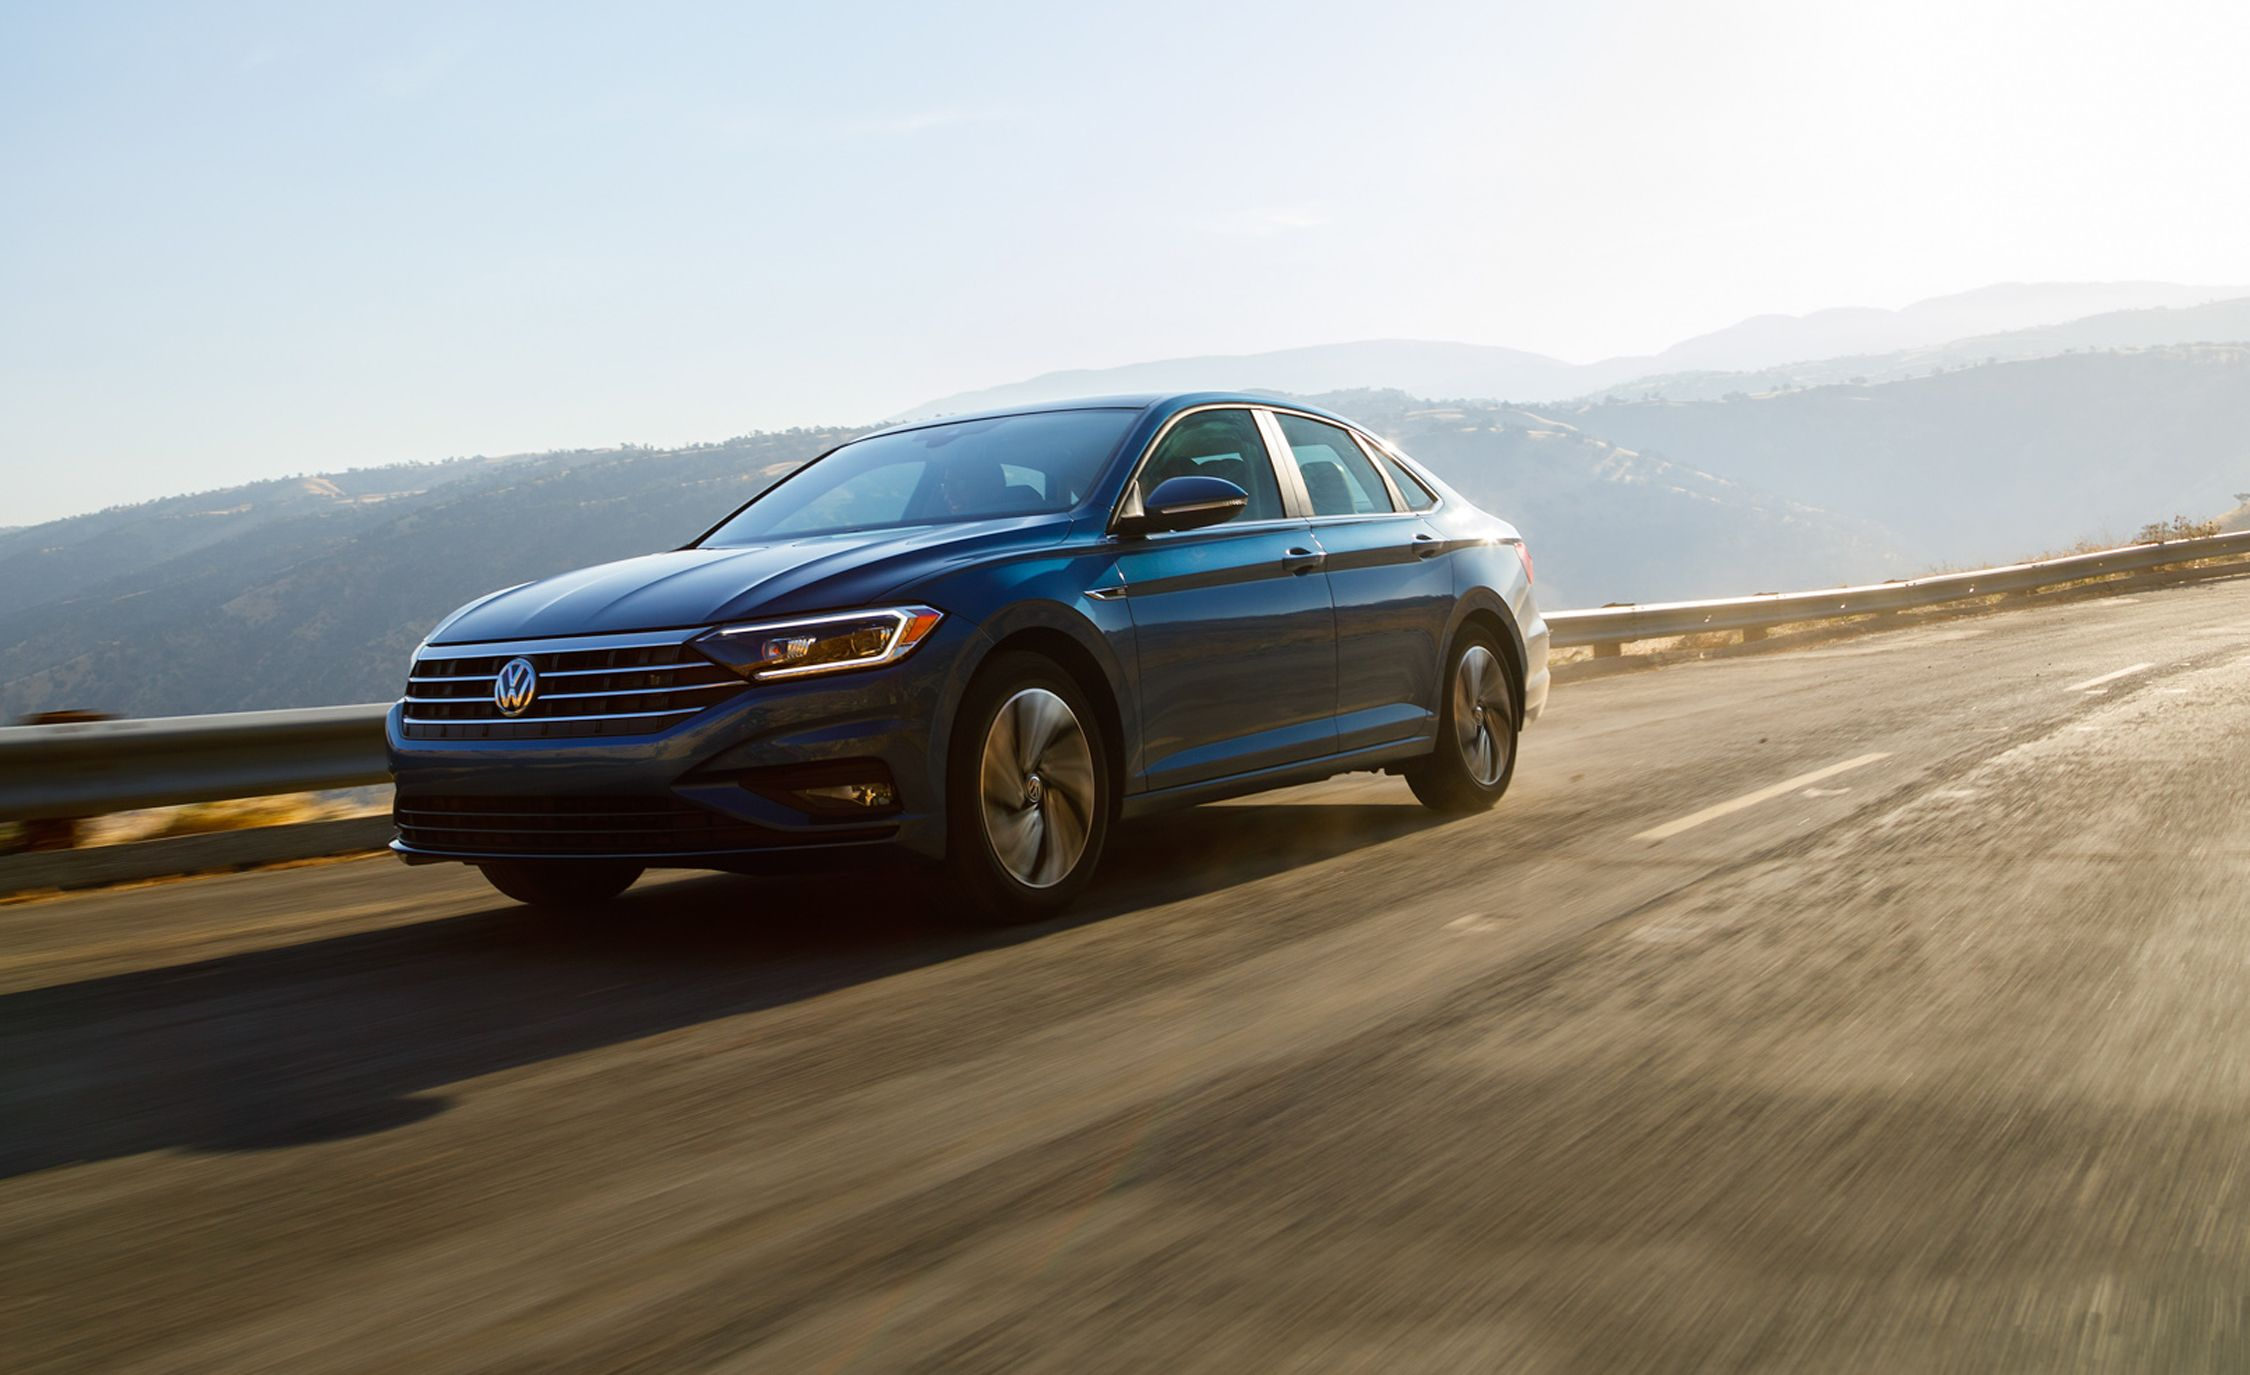 2019 Volkswagen Jetta: New Almost Everything